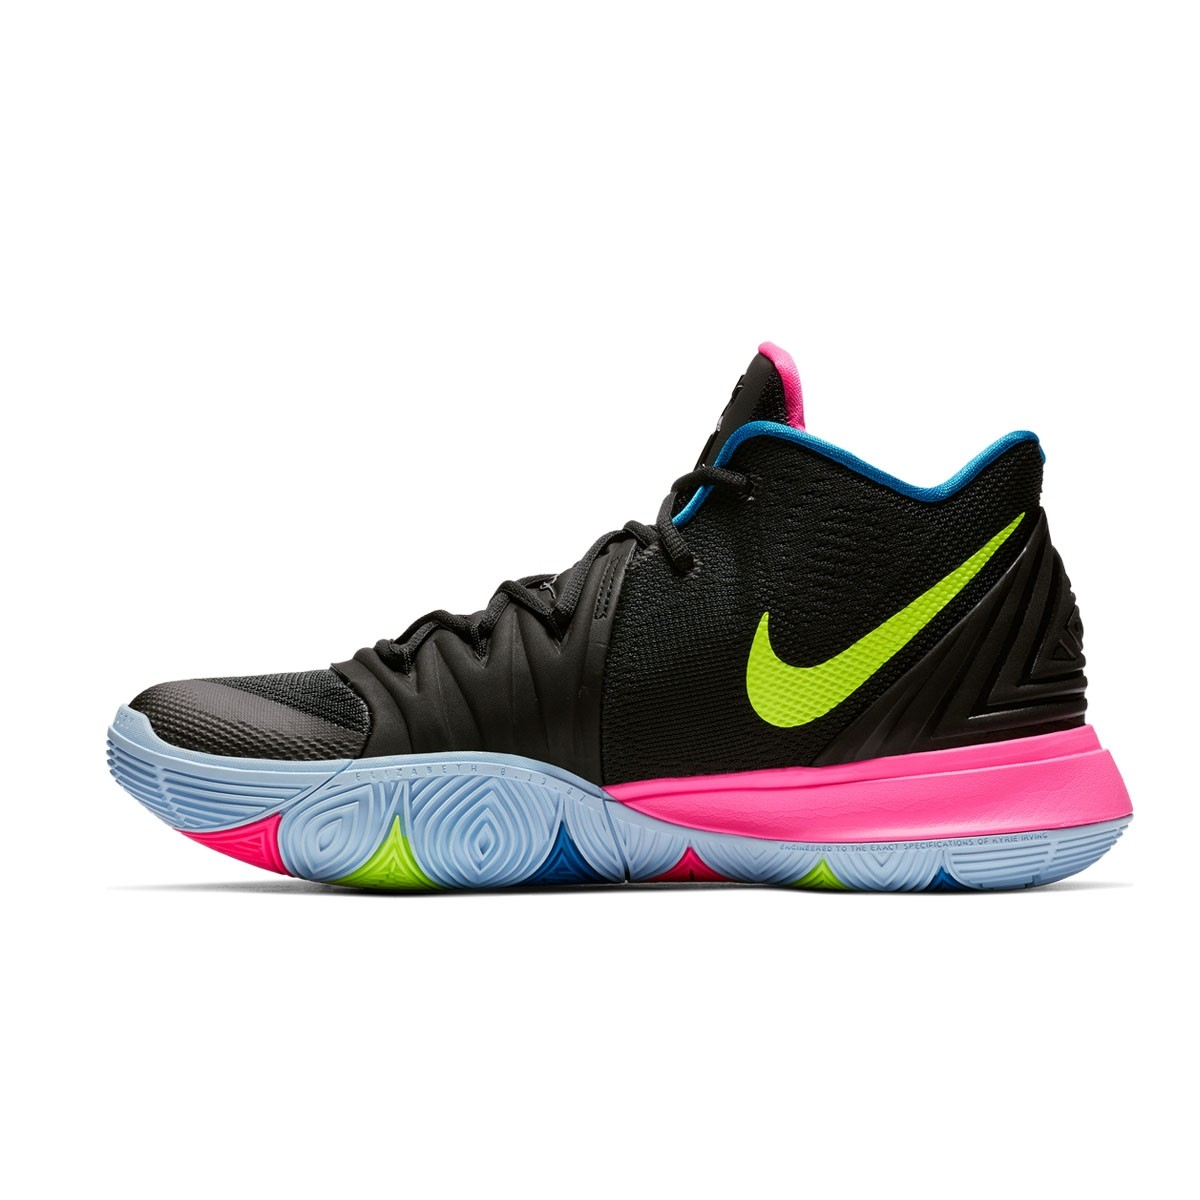 Nike Kyrie 5 'Just Do It' AO2918-003